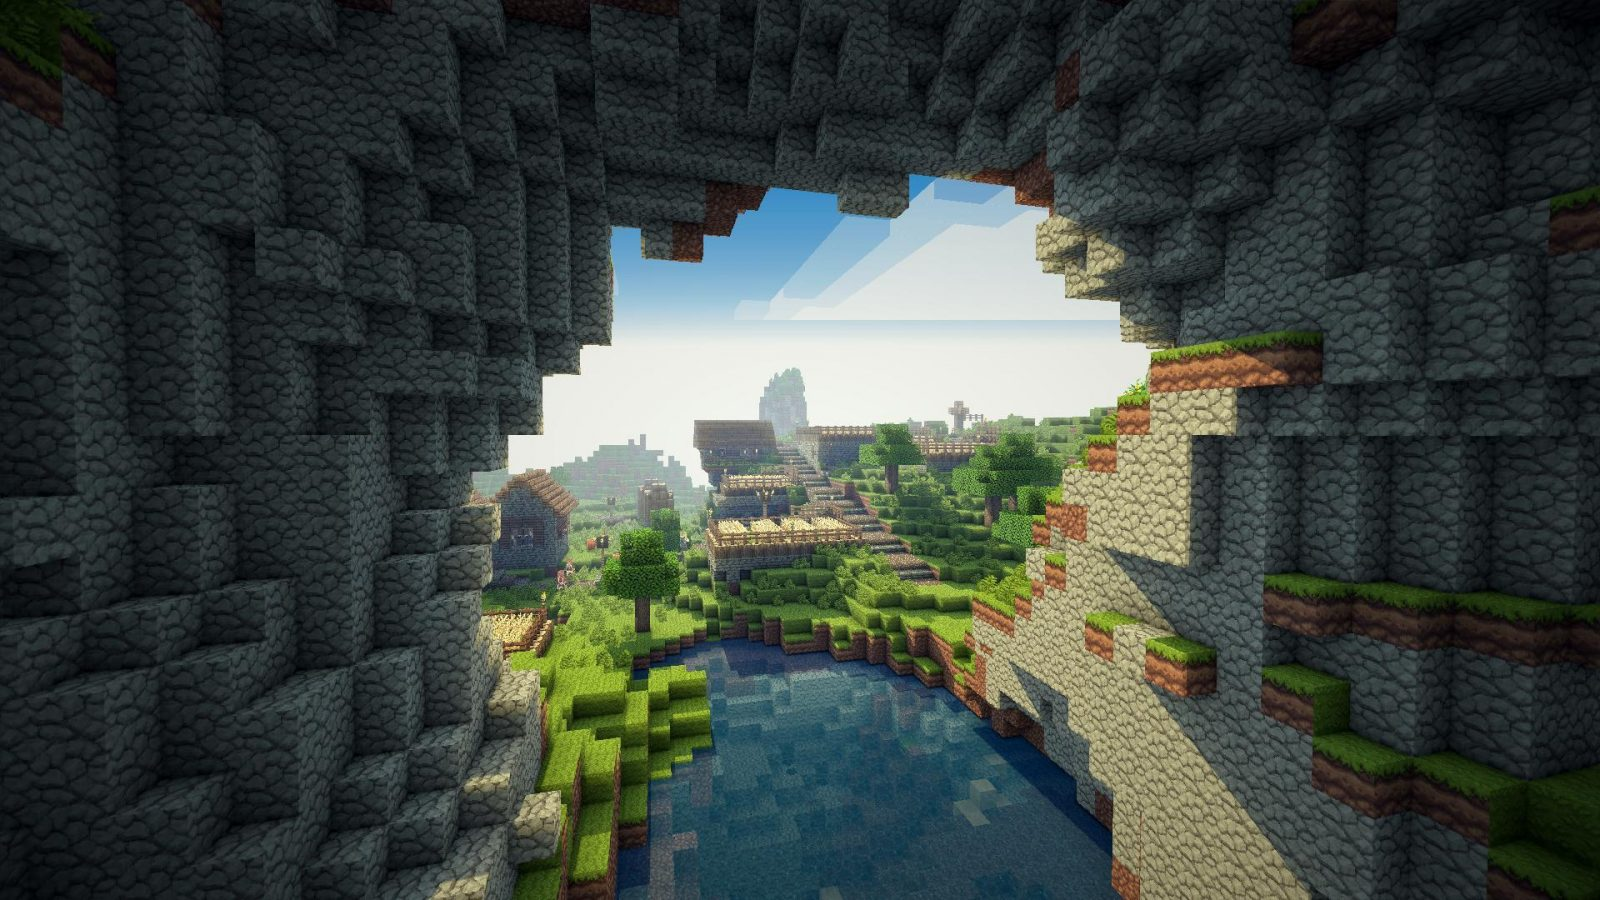 Minecraft DuckTales (Whooh Hoo) Content Now Available To Explore